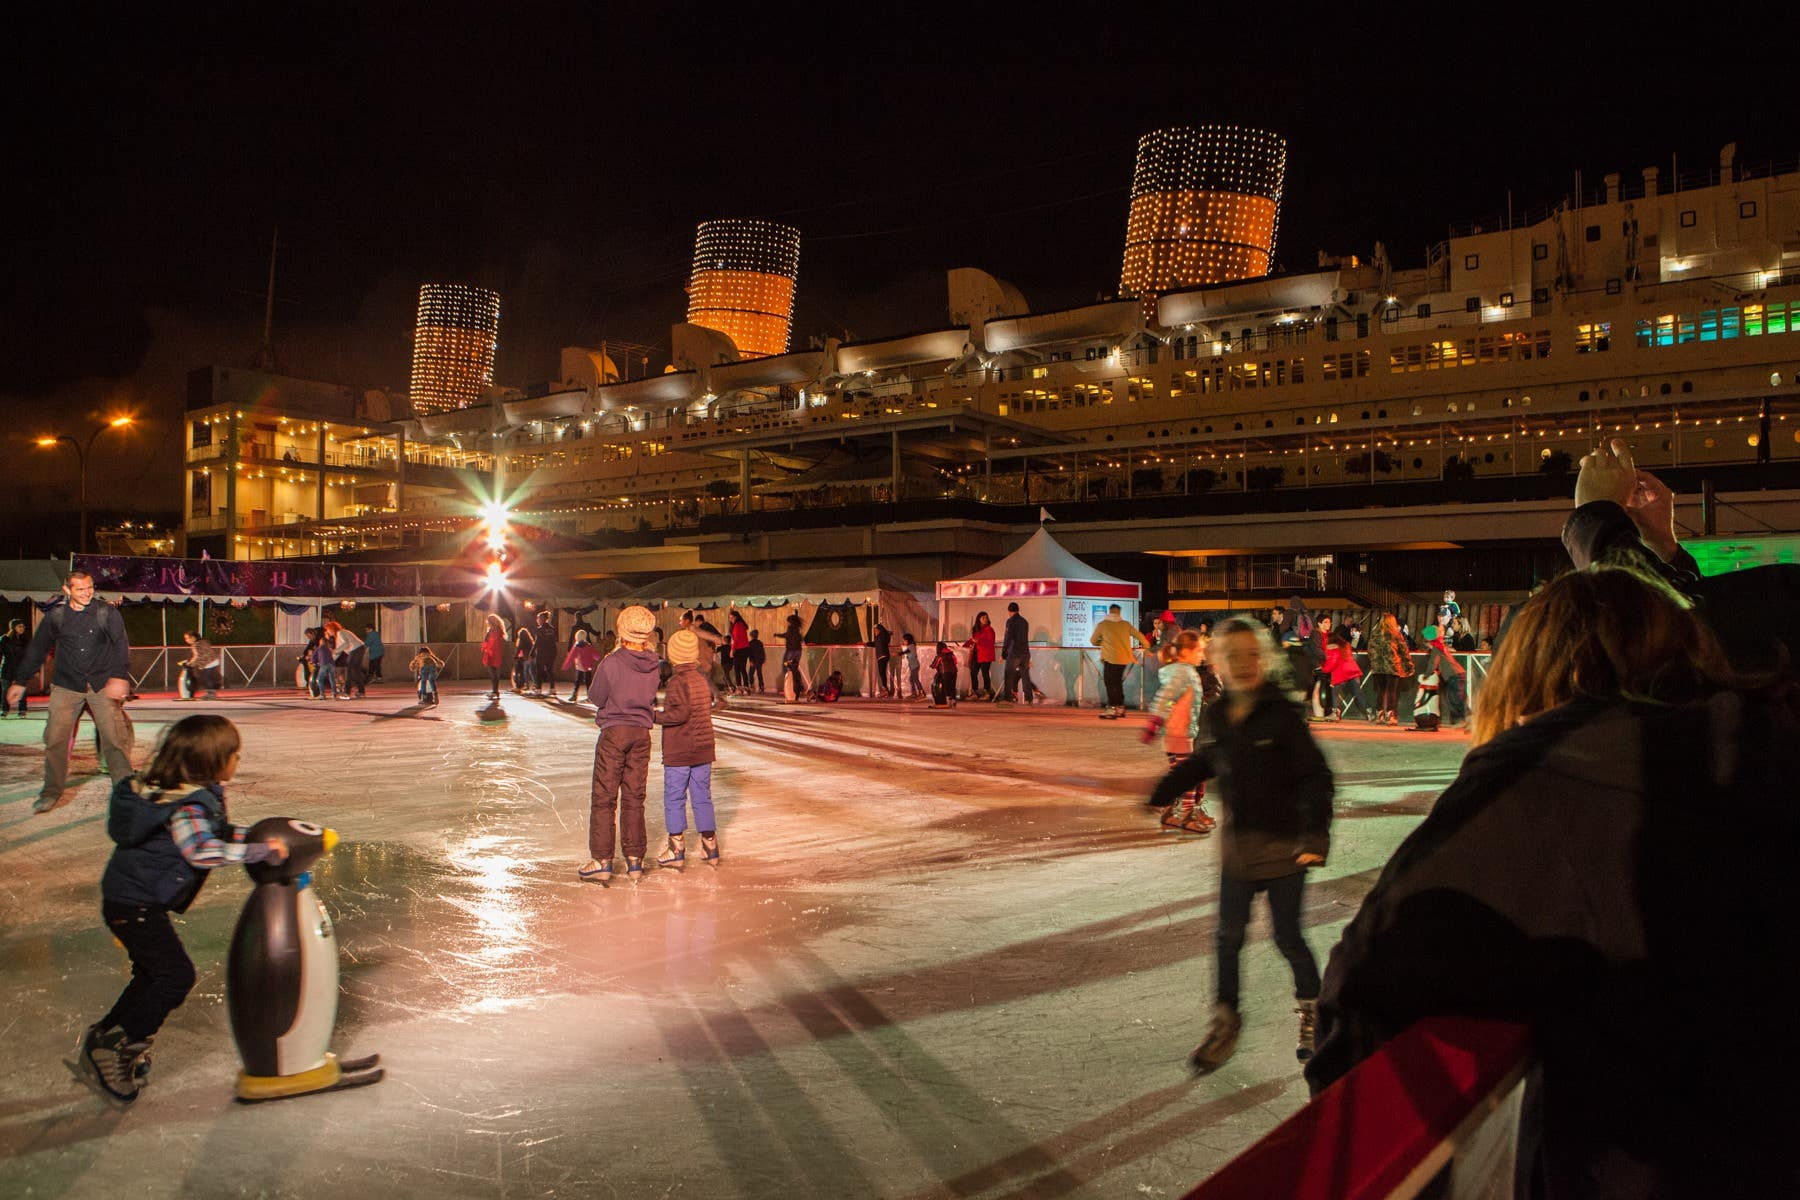 Outdoor ice skating at The Queen Mary True North Ice Rink